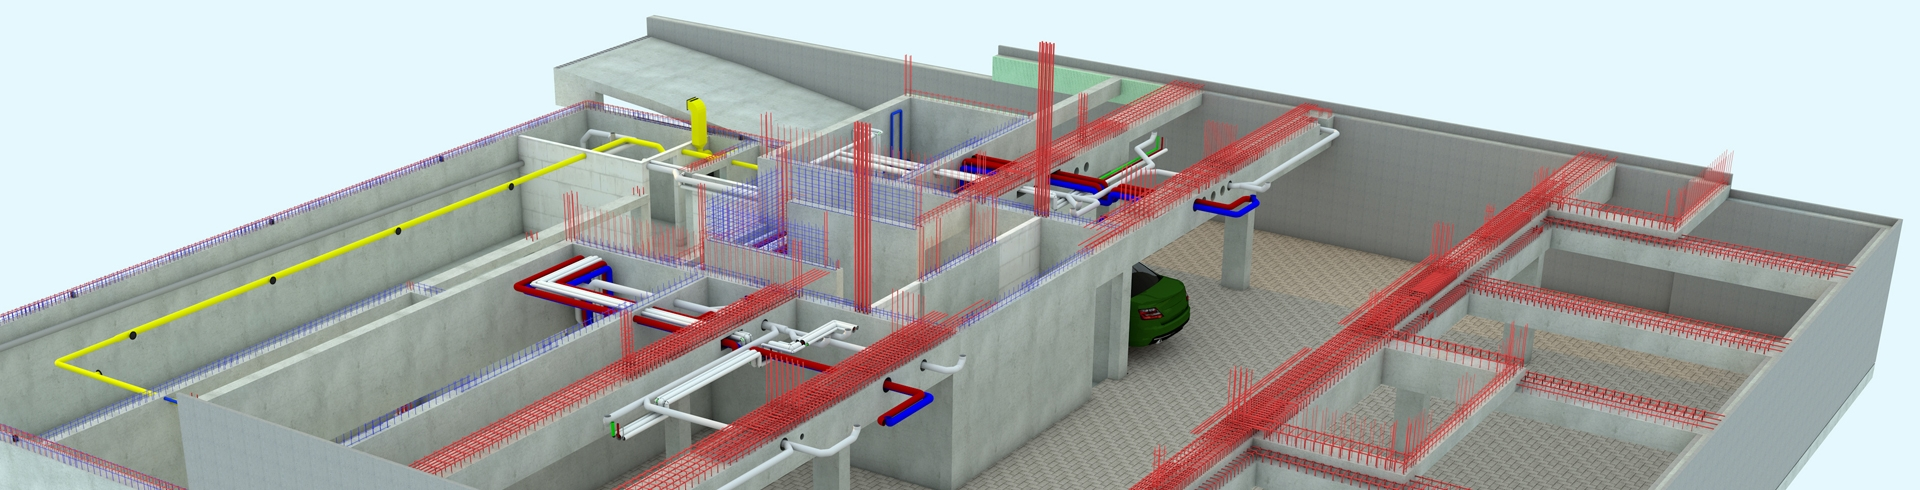 Otto Wulff Building Information Modeling